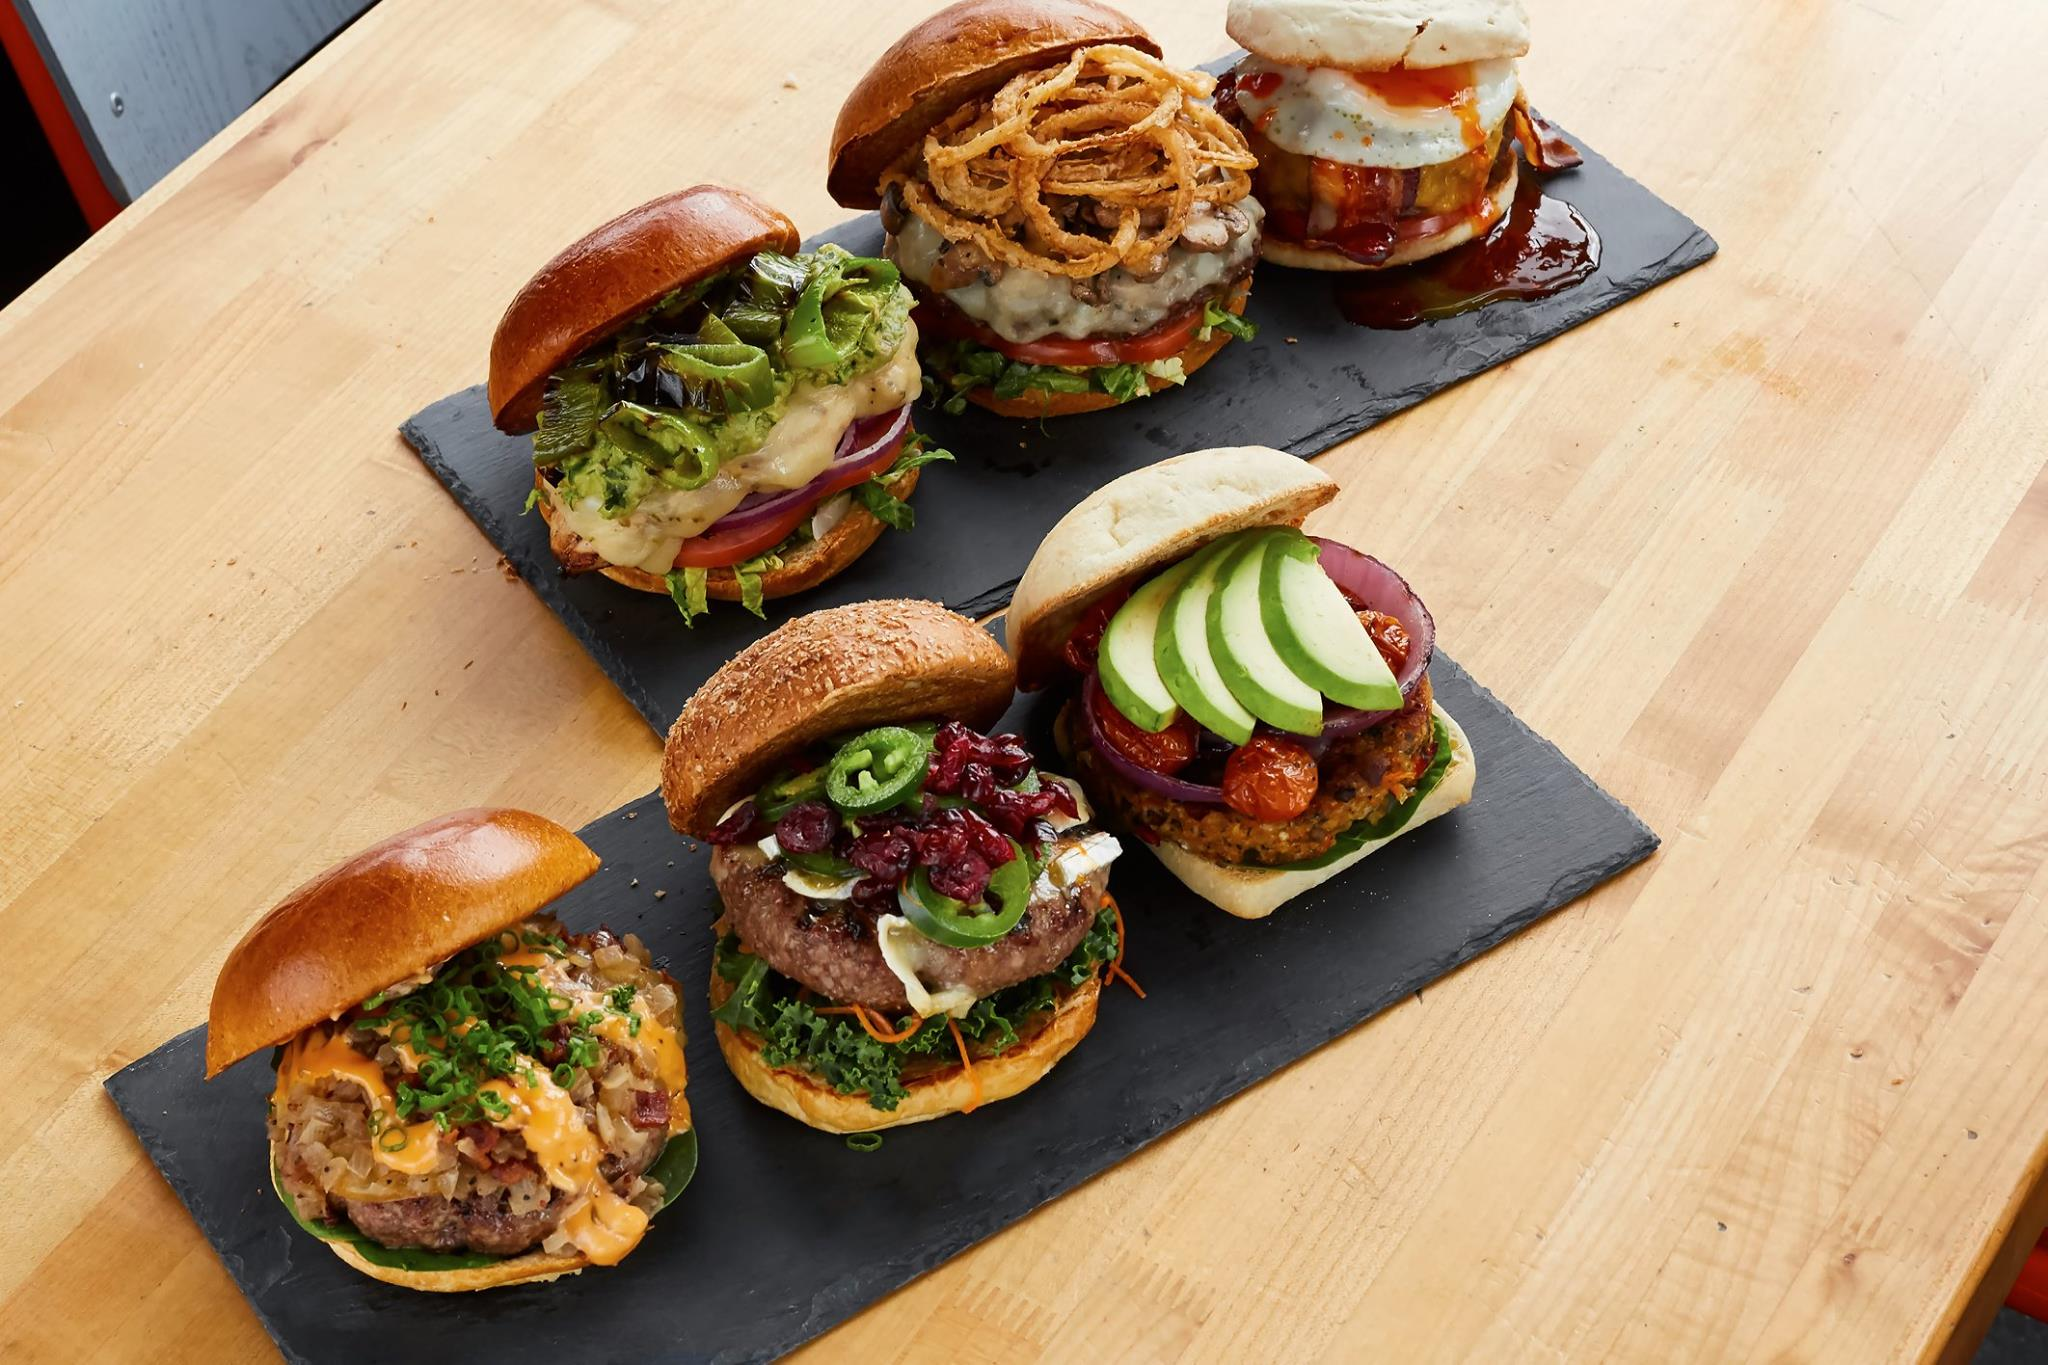 The Counter Mountain View reviews | Burgers at 2580 W El Camino Real Blvd - Mountain View CA